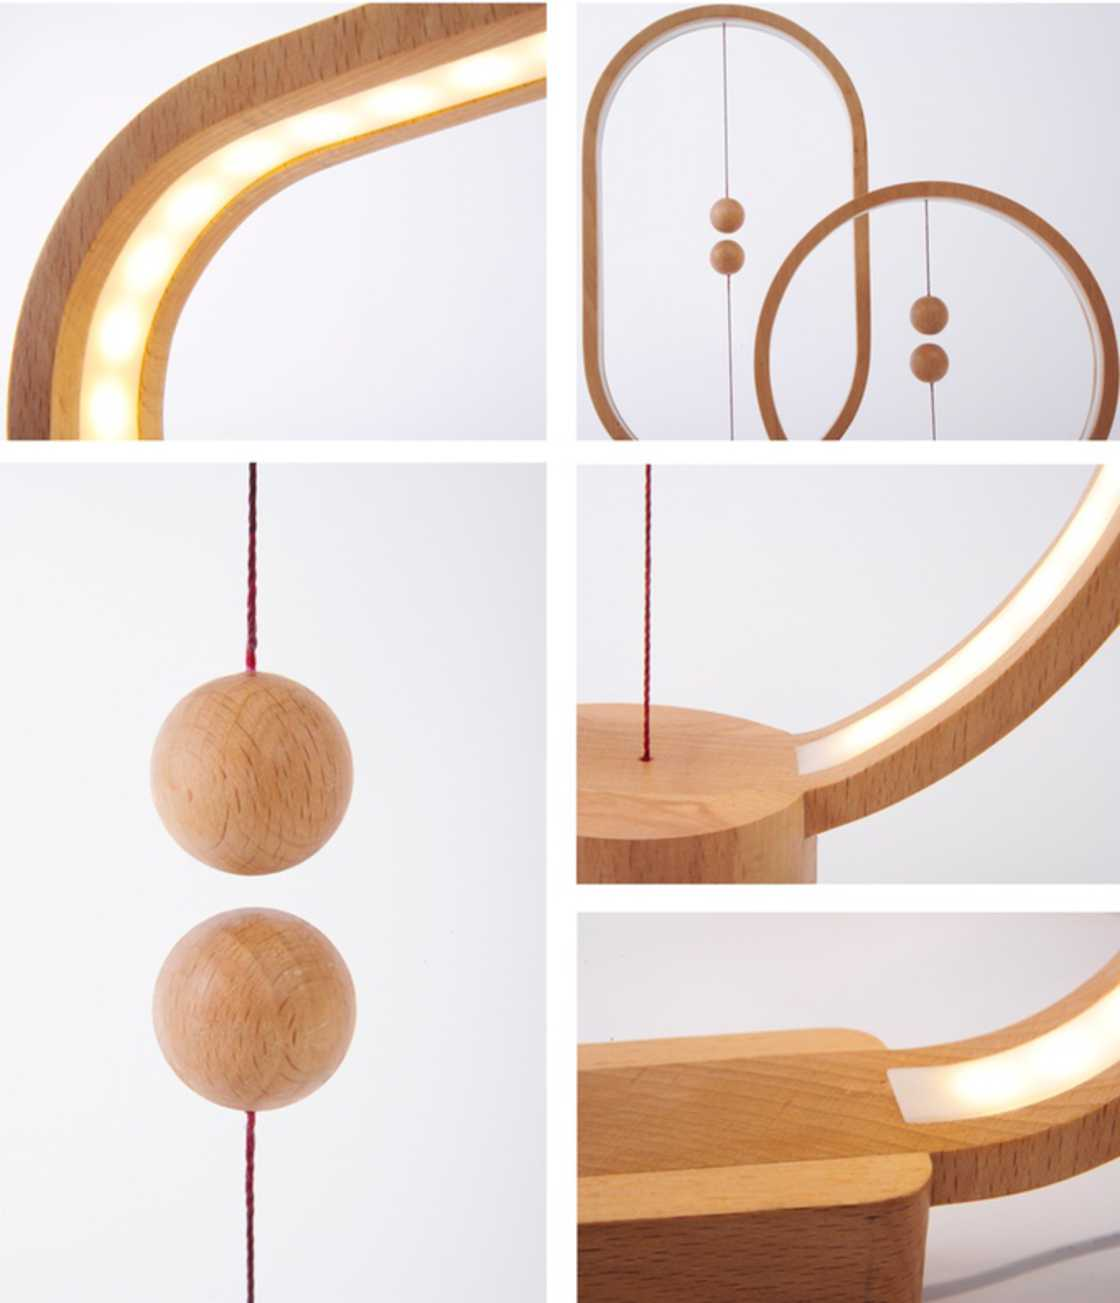 Heng Balance Lamp - A beautiful lamp with a levitating switch